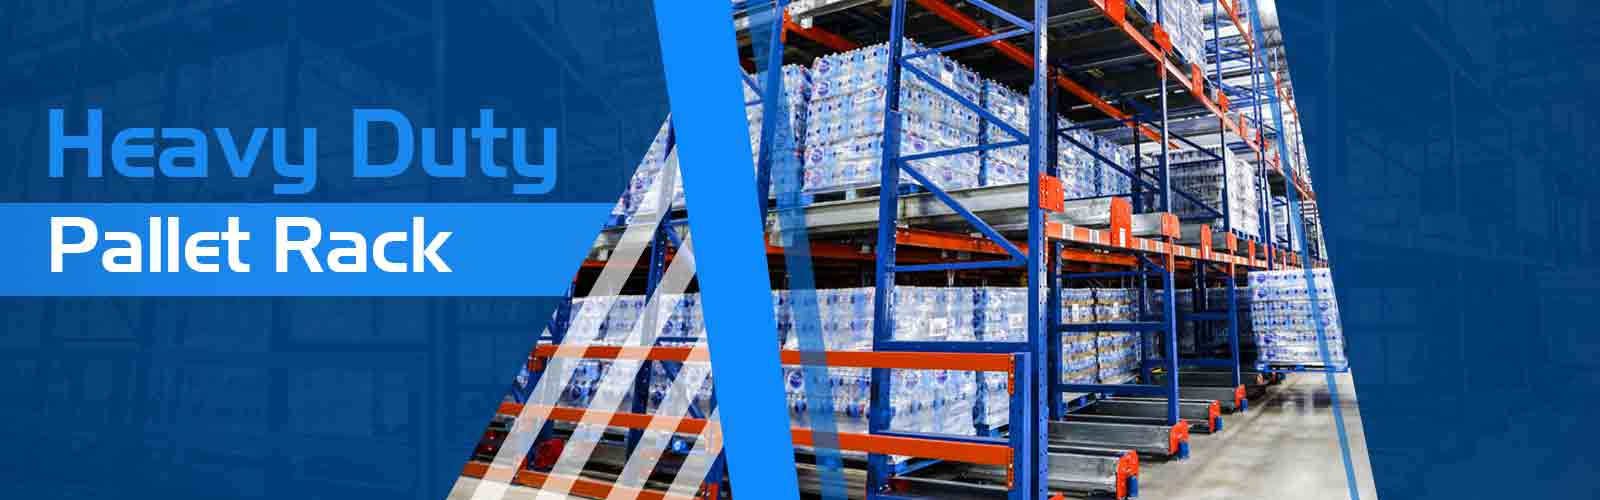 Heavy Duty Pallet Rack Manufacturers In Dhankot